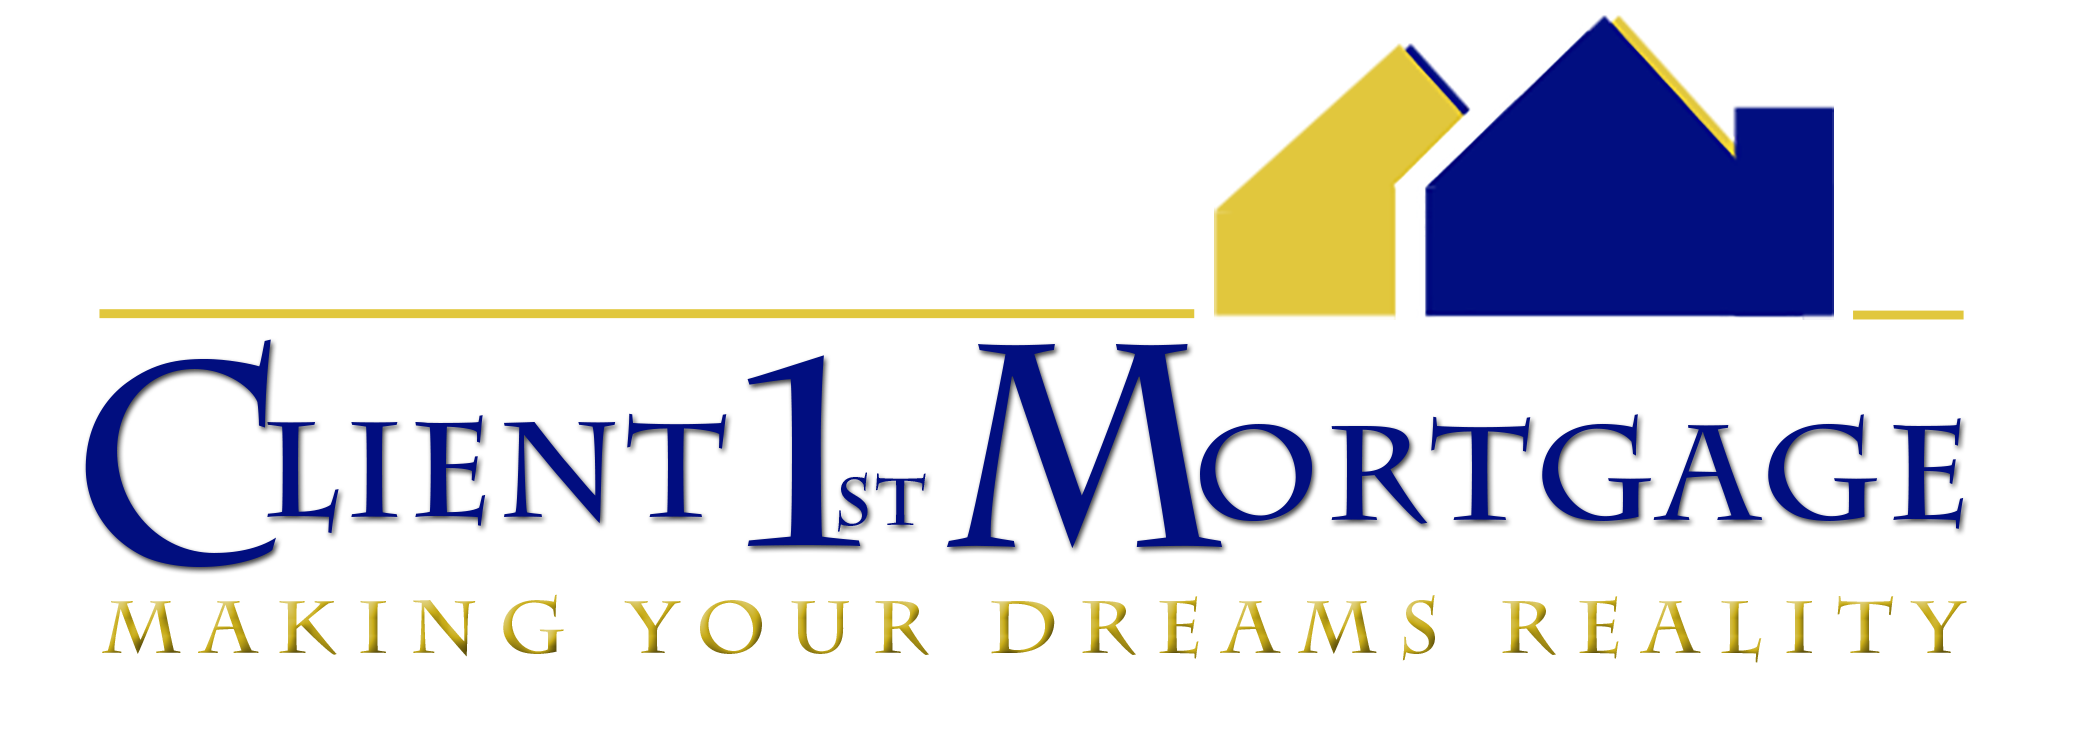 Client 1st Mortgage